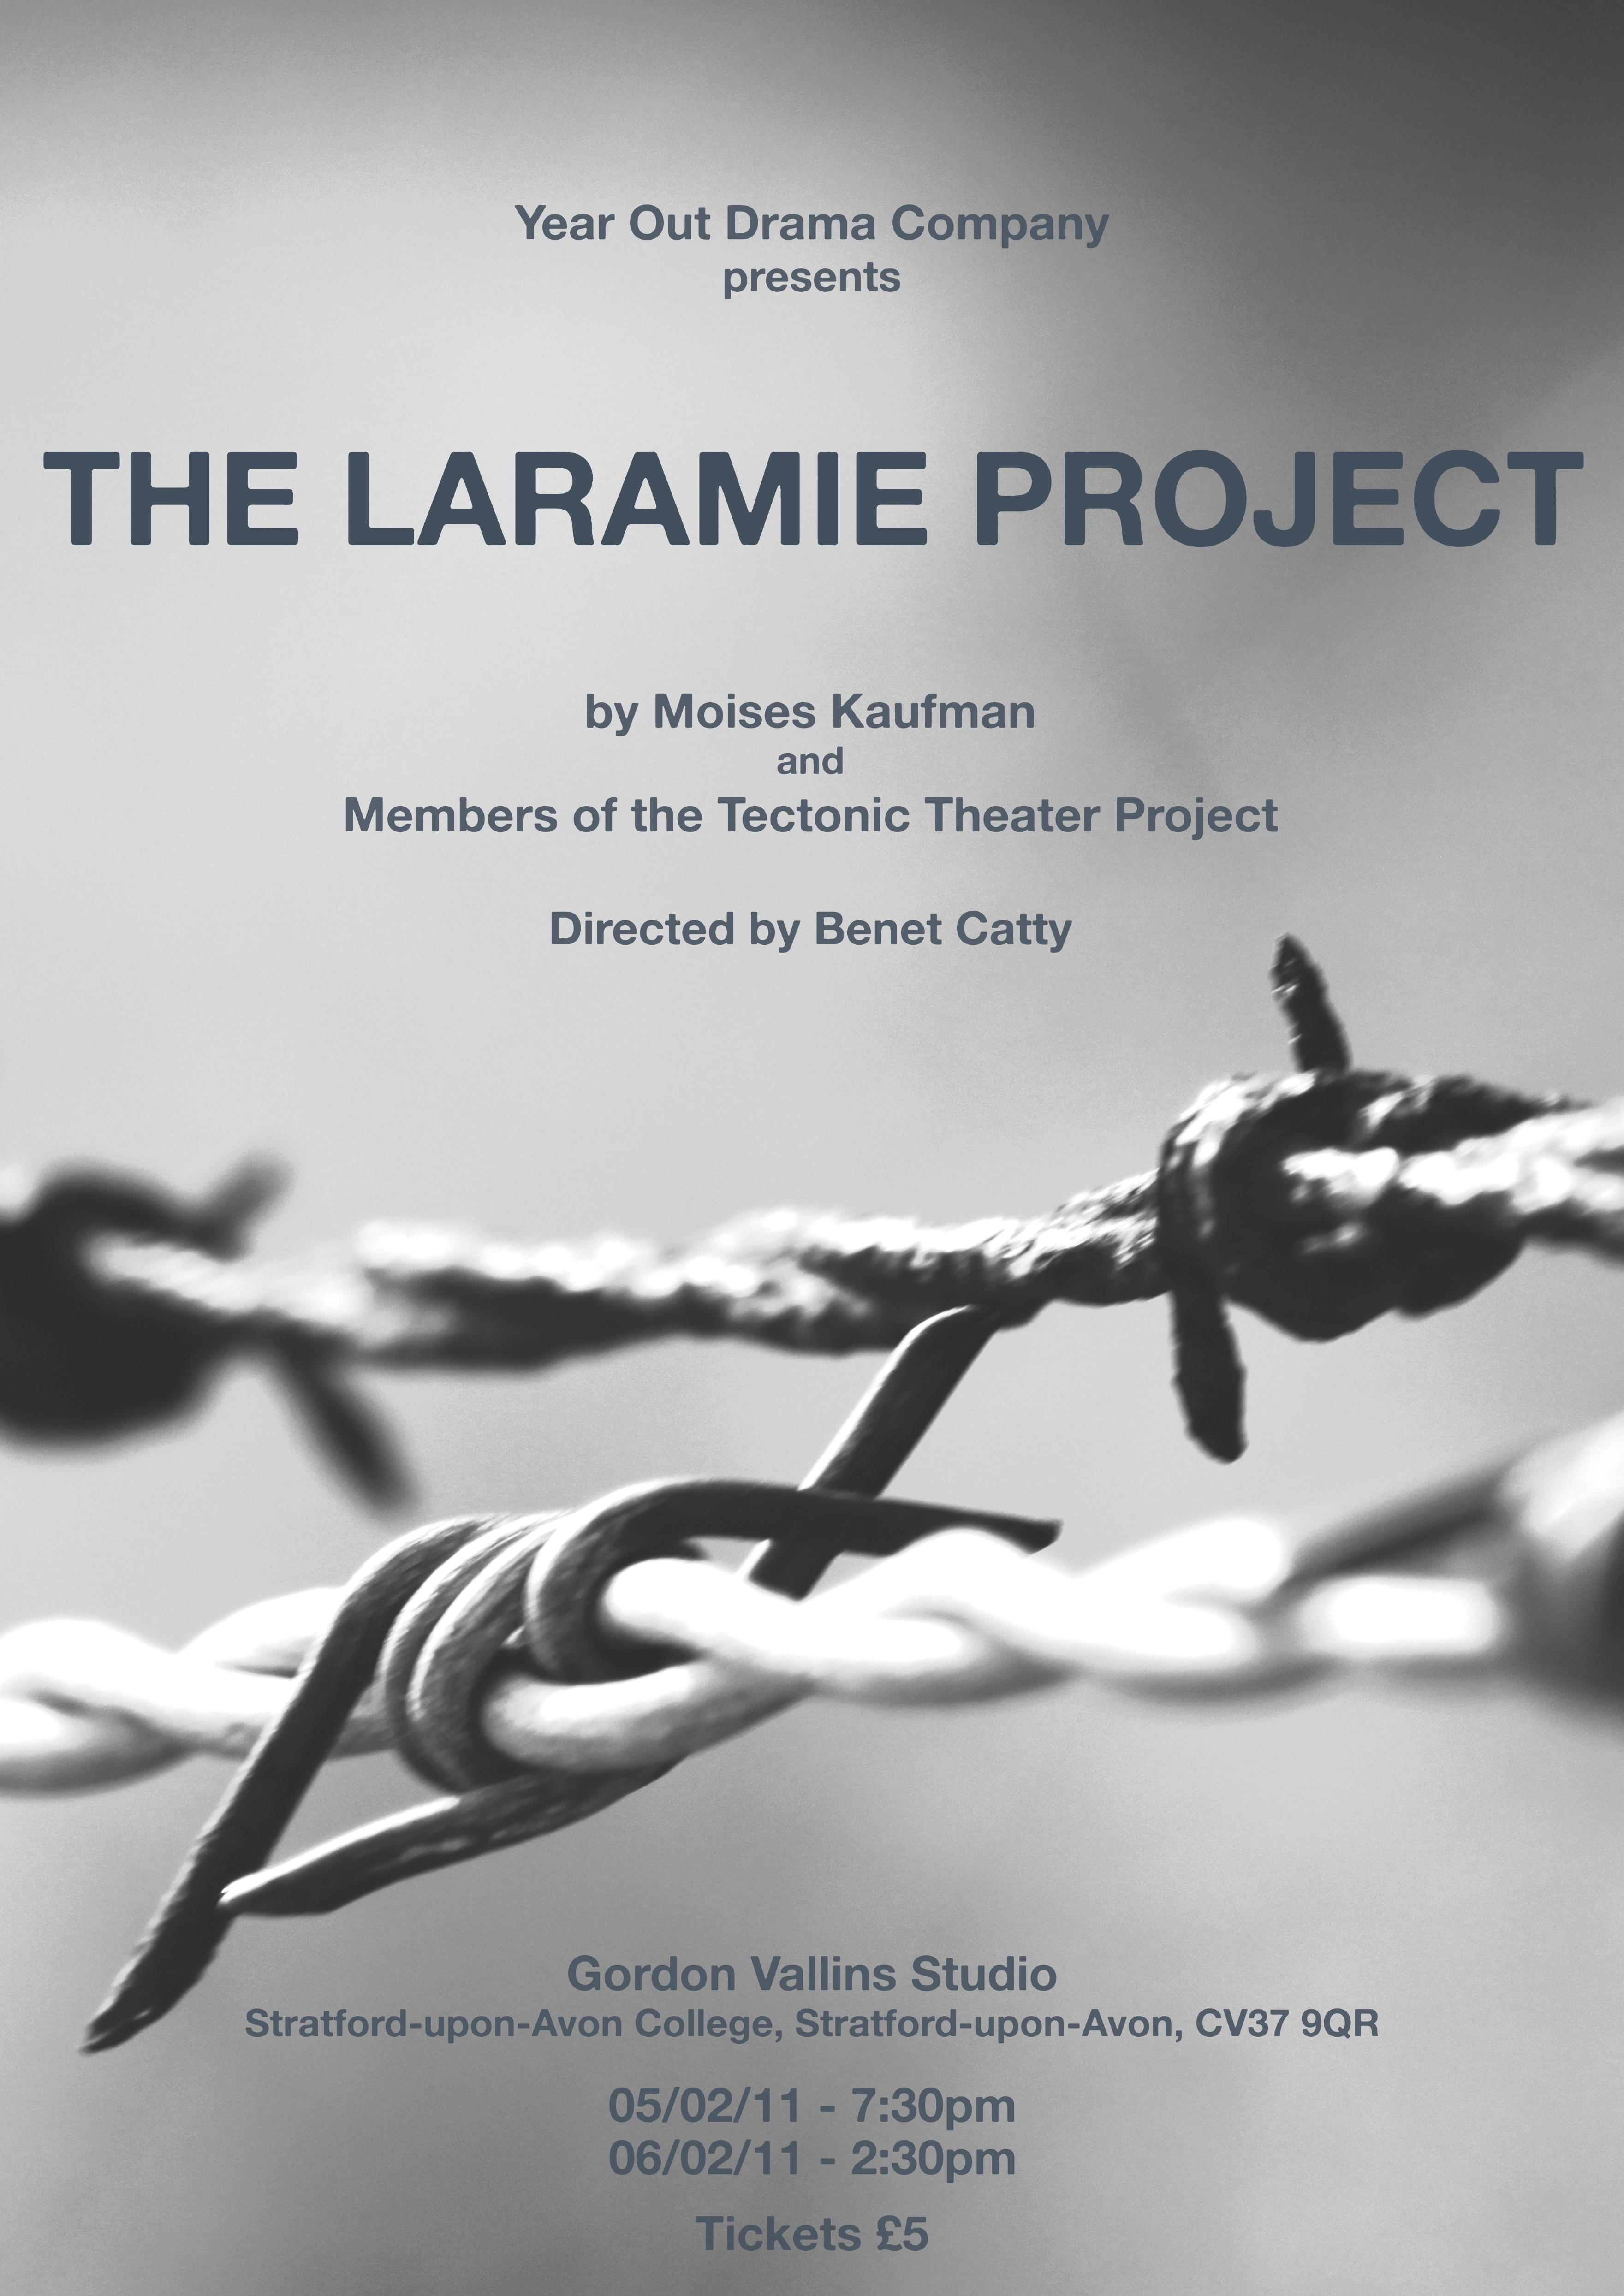 an analysis of the laramie project a play by moiss kaufman and members of the tectonic theater proje In 1998, matthew shepard was murdered in laramie, wyoming no, he was not part of any crime organization in fact he didn't have many personal enemies at all he was murdered because he was gay this triggered many new hate crime laws to be passed, and also got moises kaufman to take members of his.